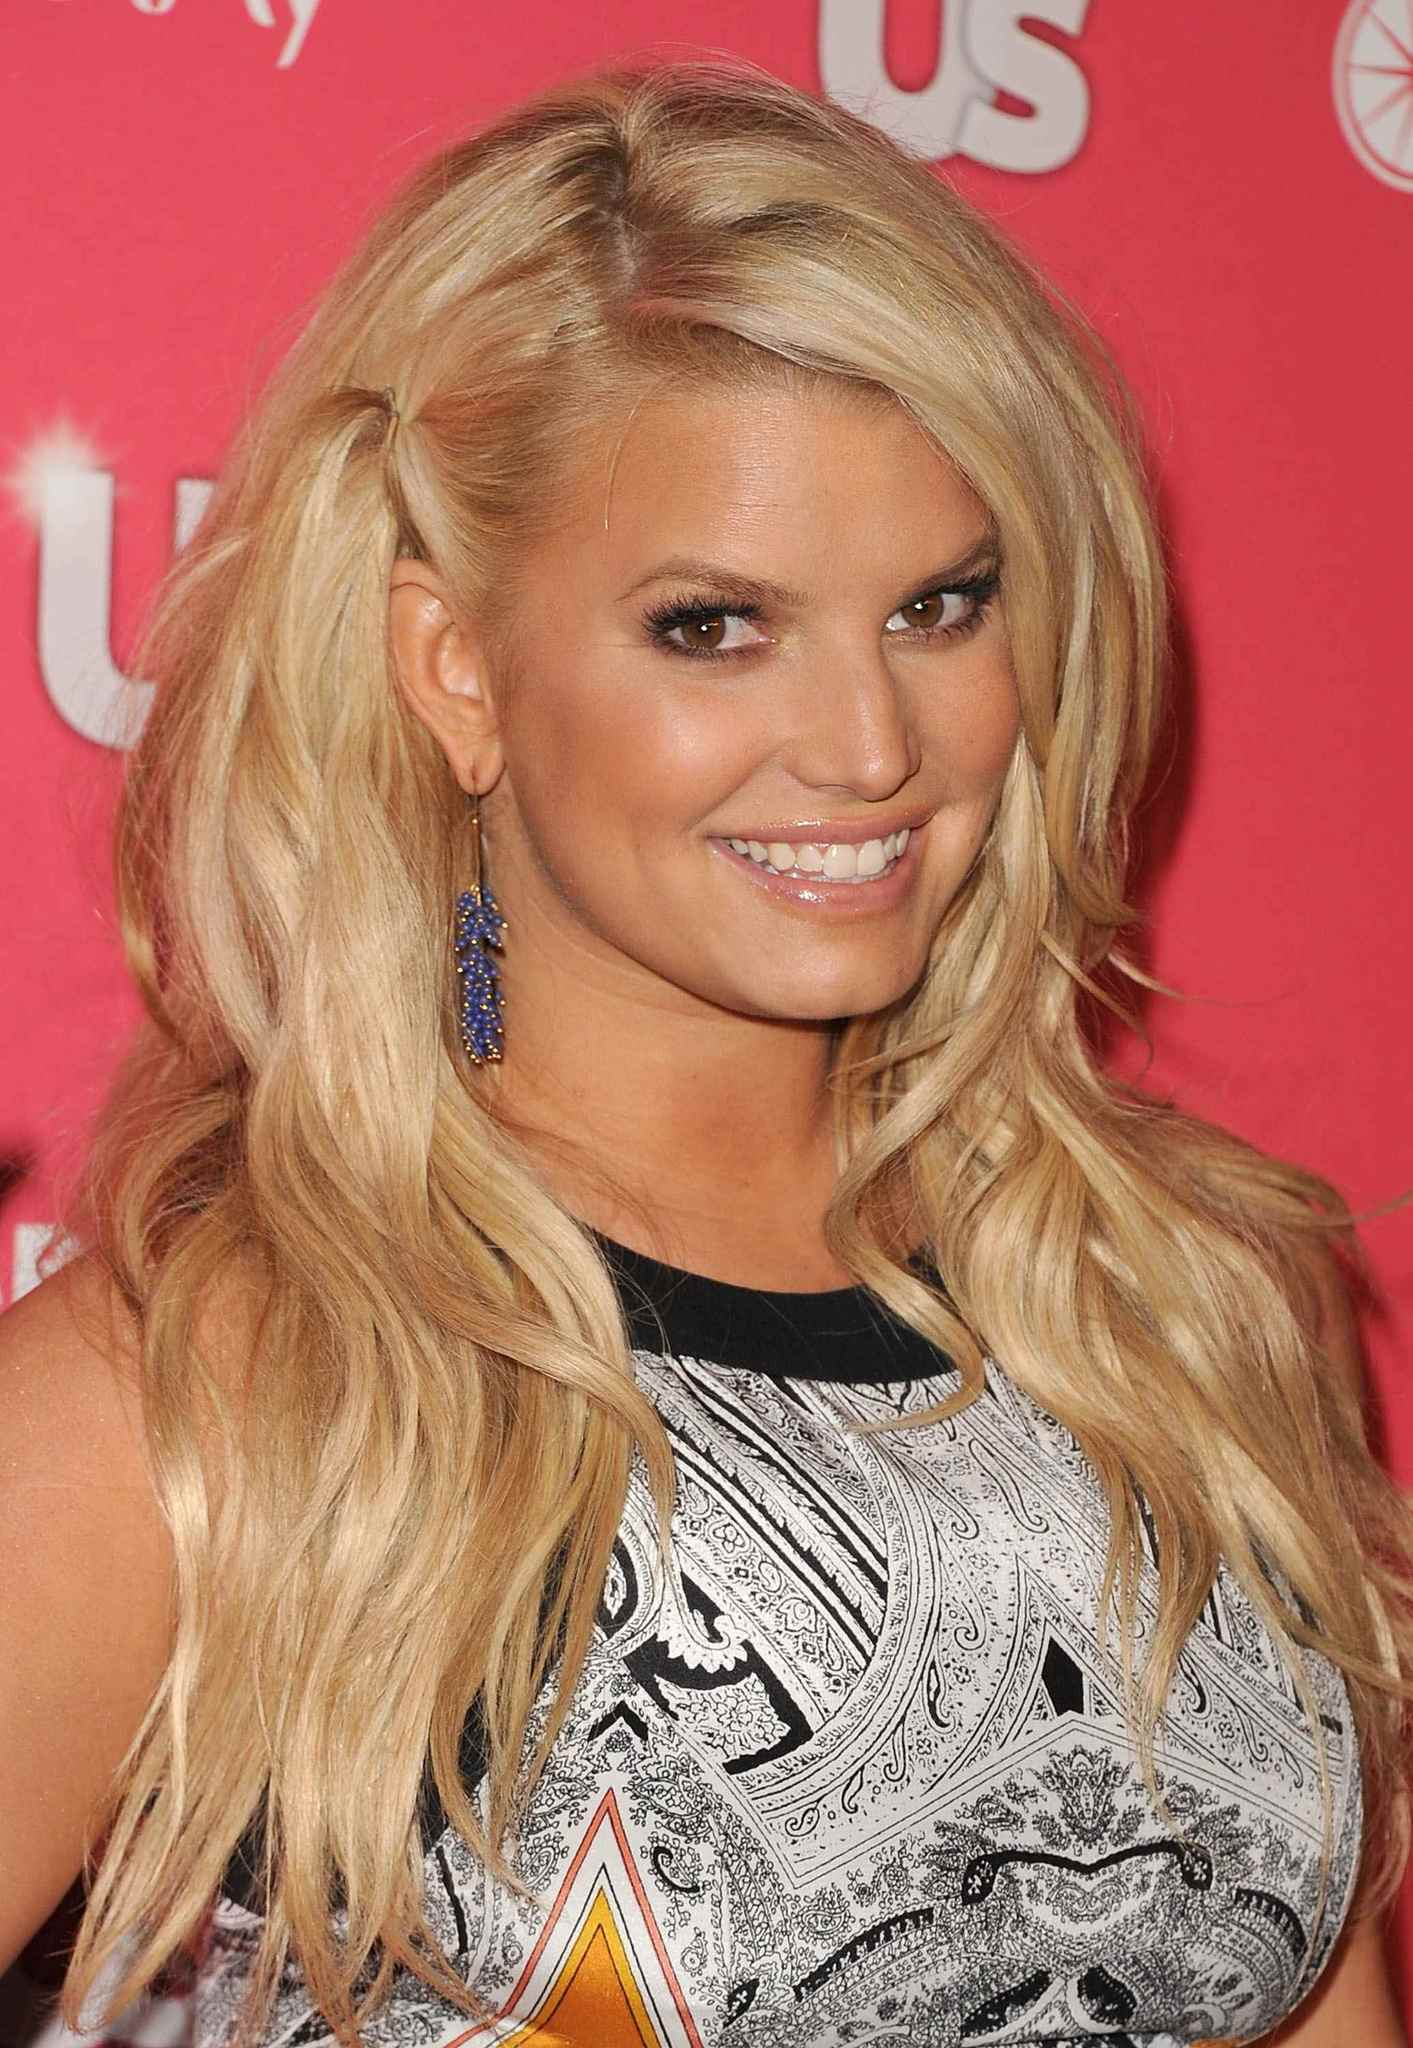 Jessica Simpson nudes (46 fotos), leaked Ass, Snapchat, cameltoe 2020